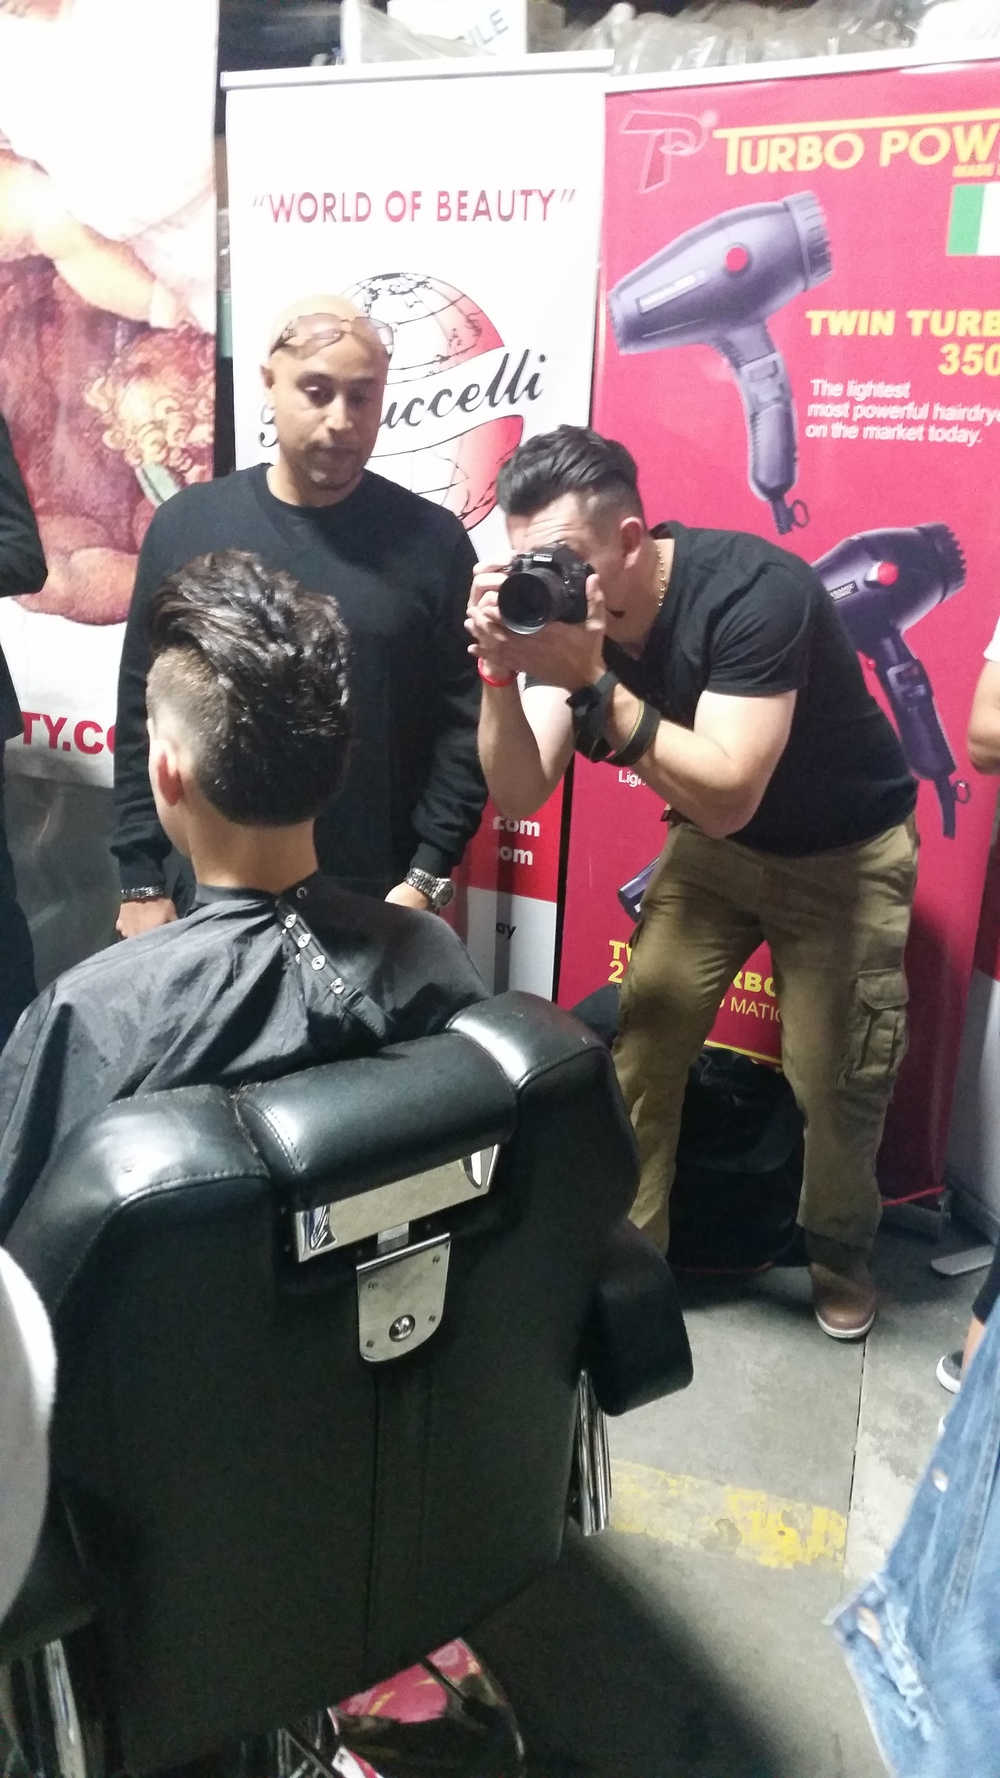 I had to grab a picture of @TheFit_Barber putting in work! He grabbed so many awesome photos and video for the whole event.